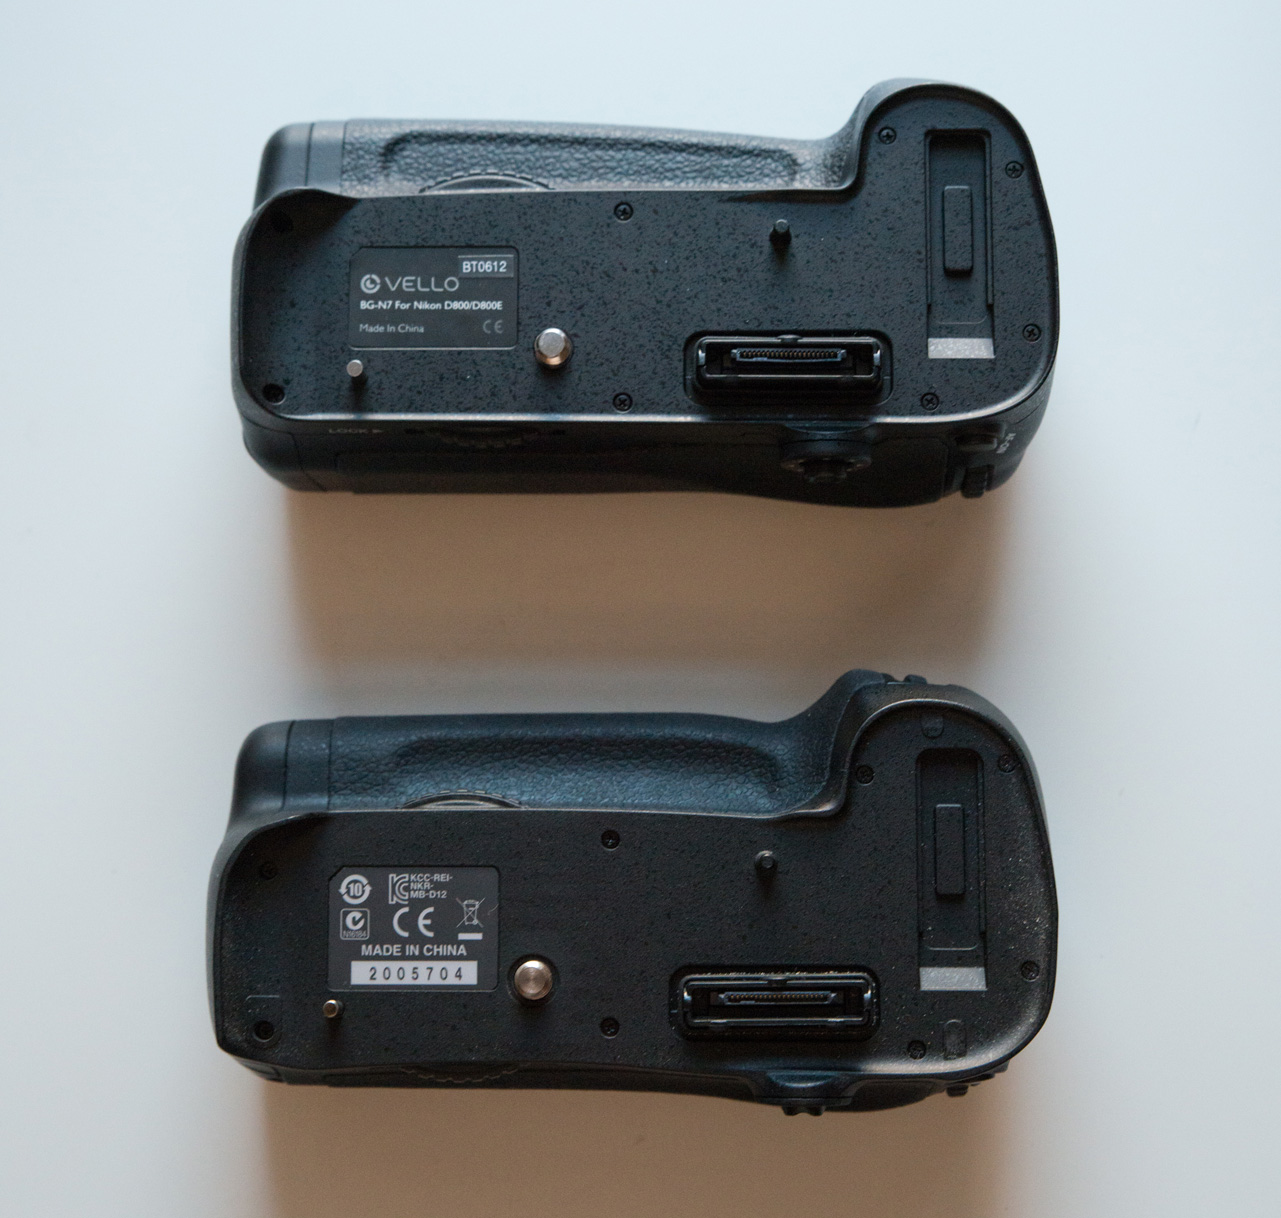 Nikon MB-D12 vs Vello BG-N7 grip review